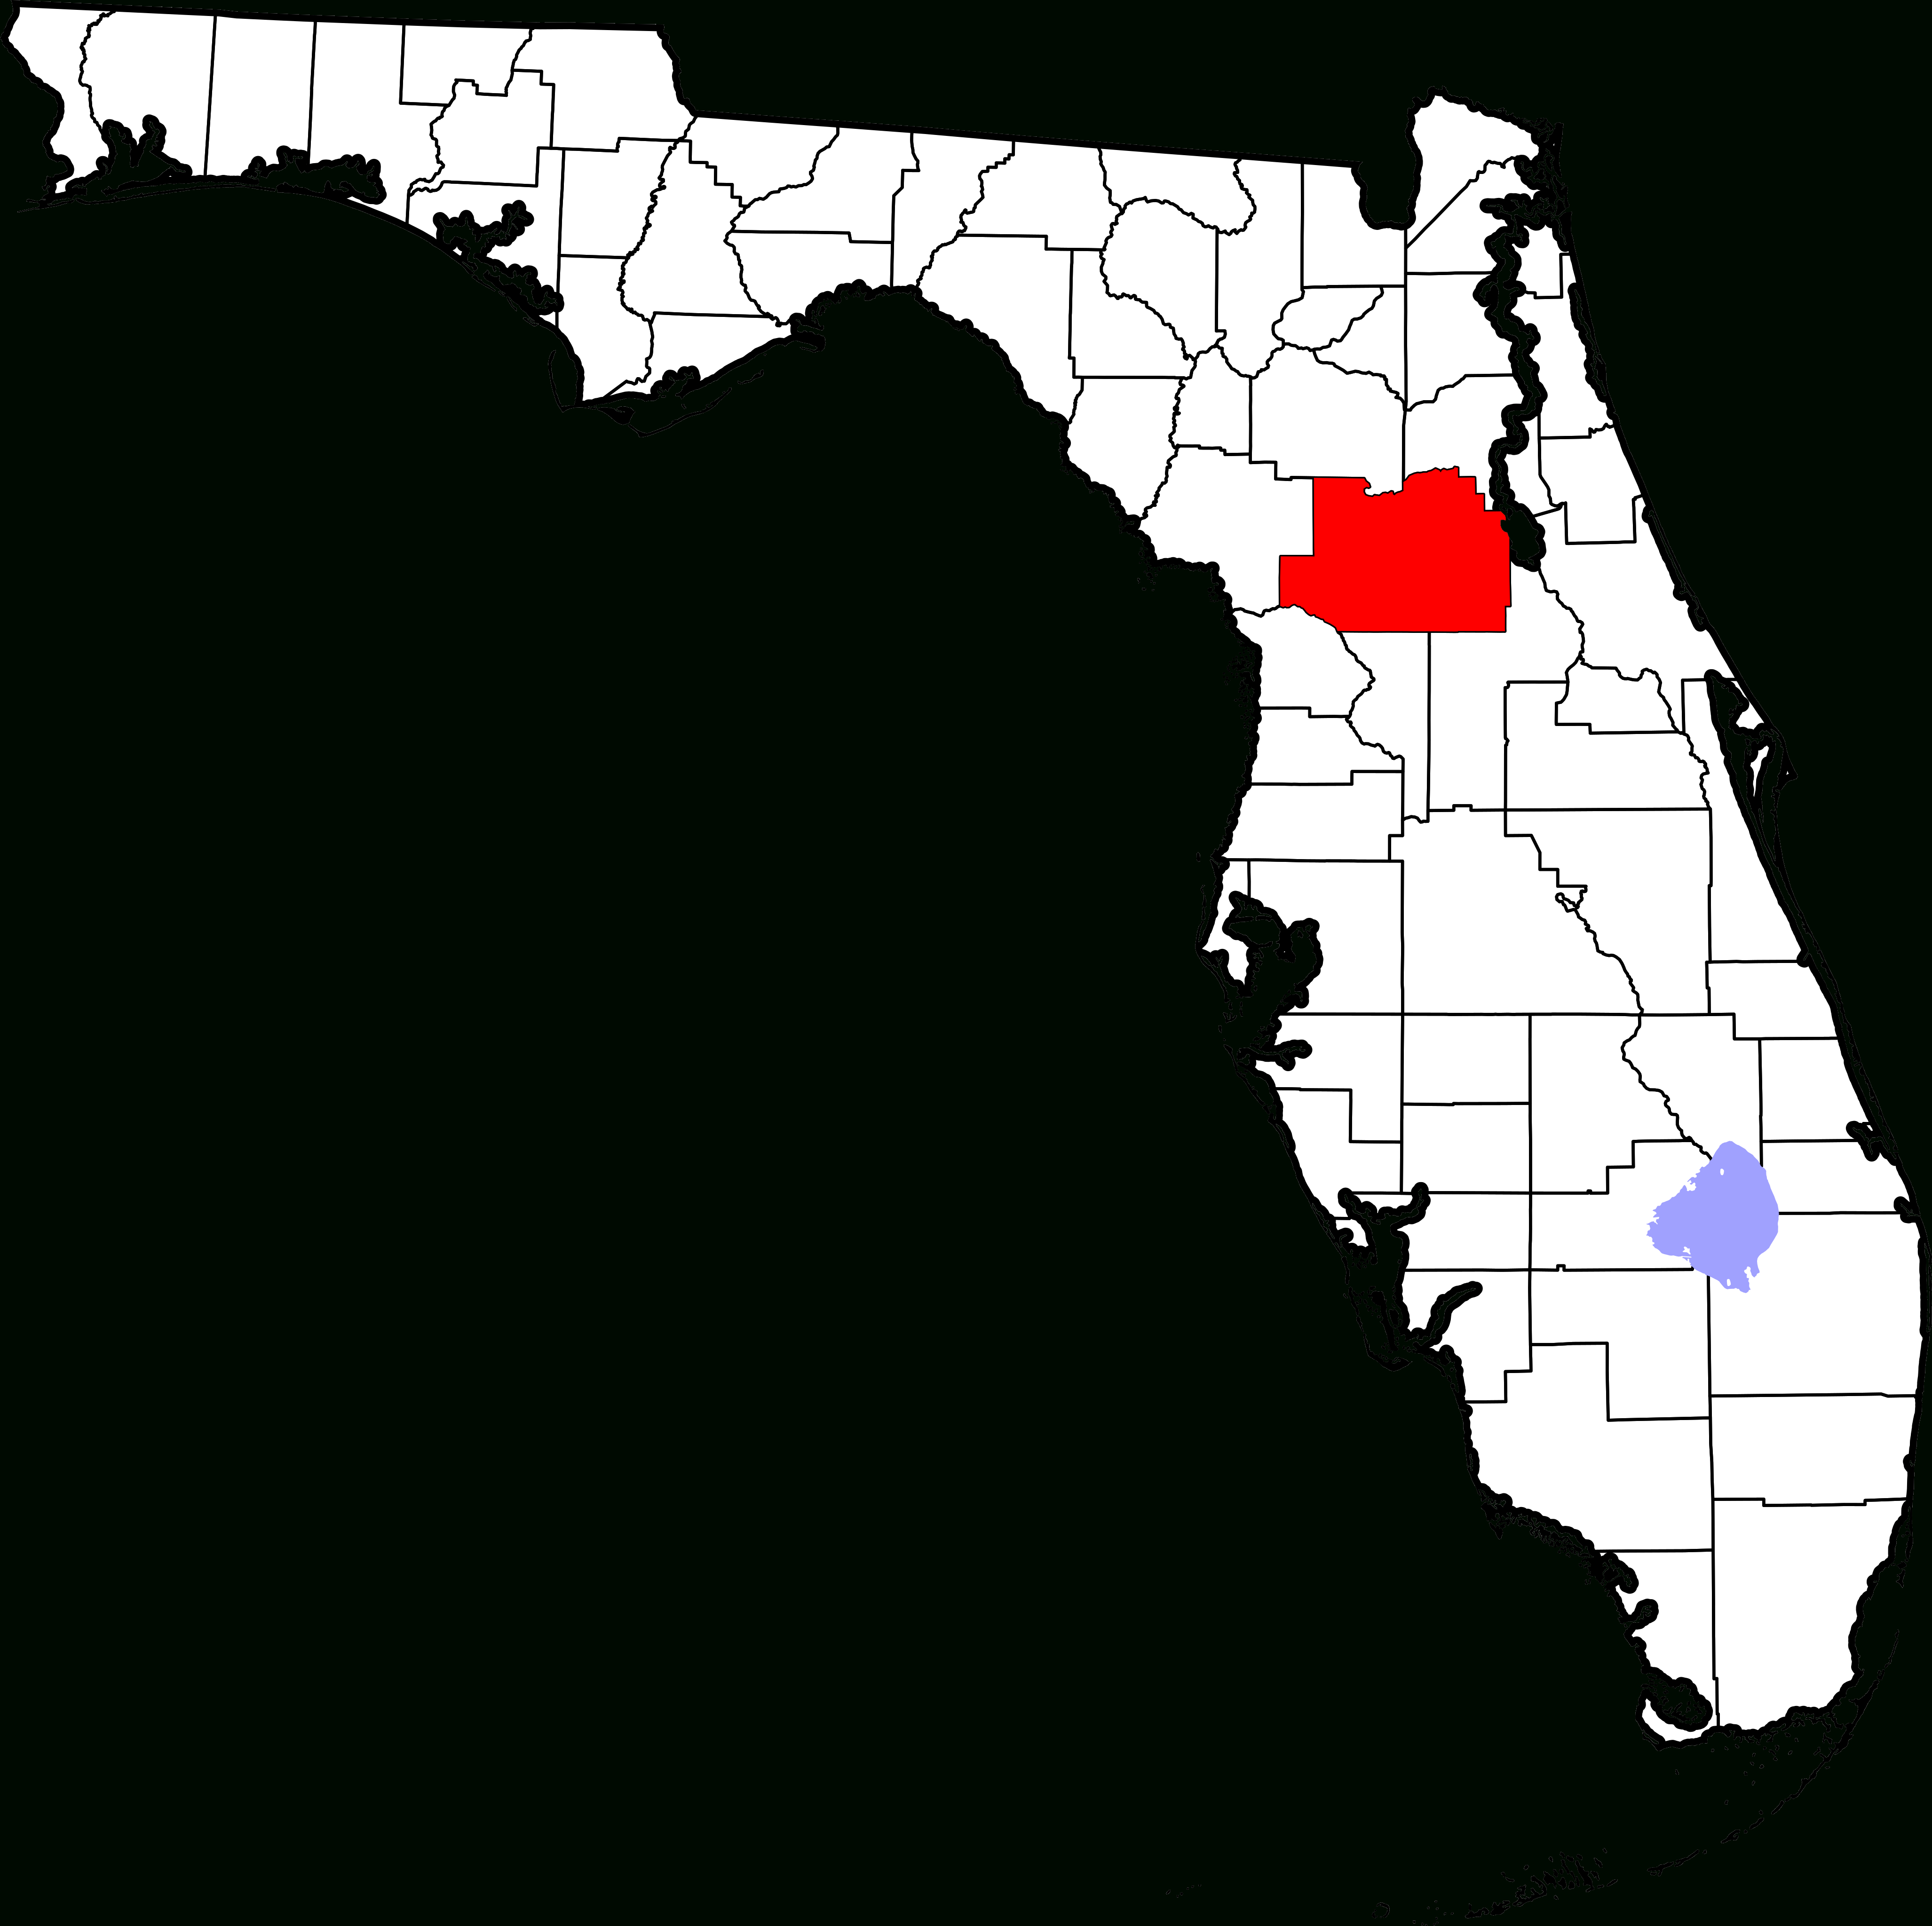 File:map Of Florida Highlighting Marion County.svg - Wikipedia - Where Is Ocala Florida On A Map